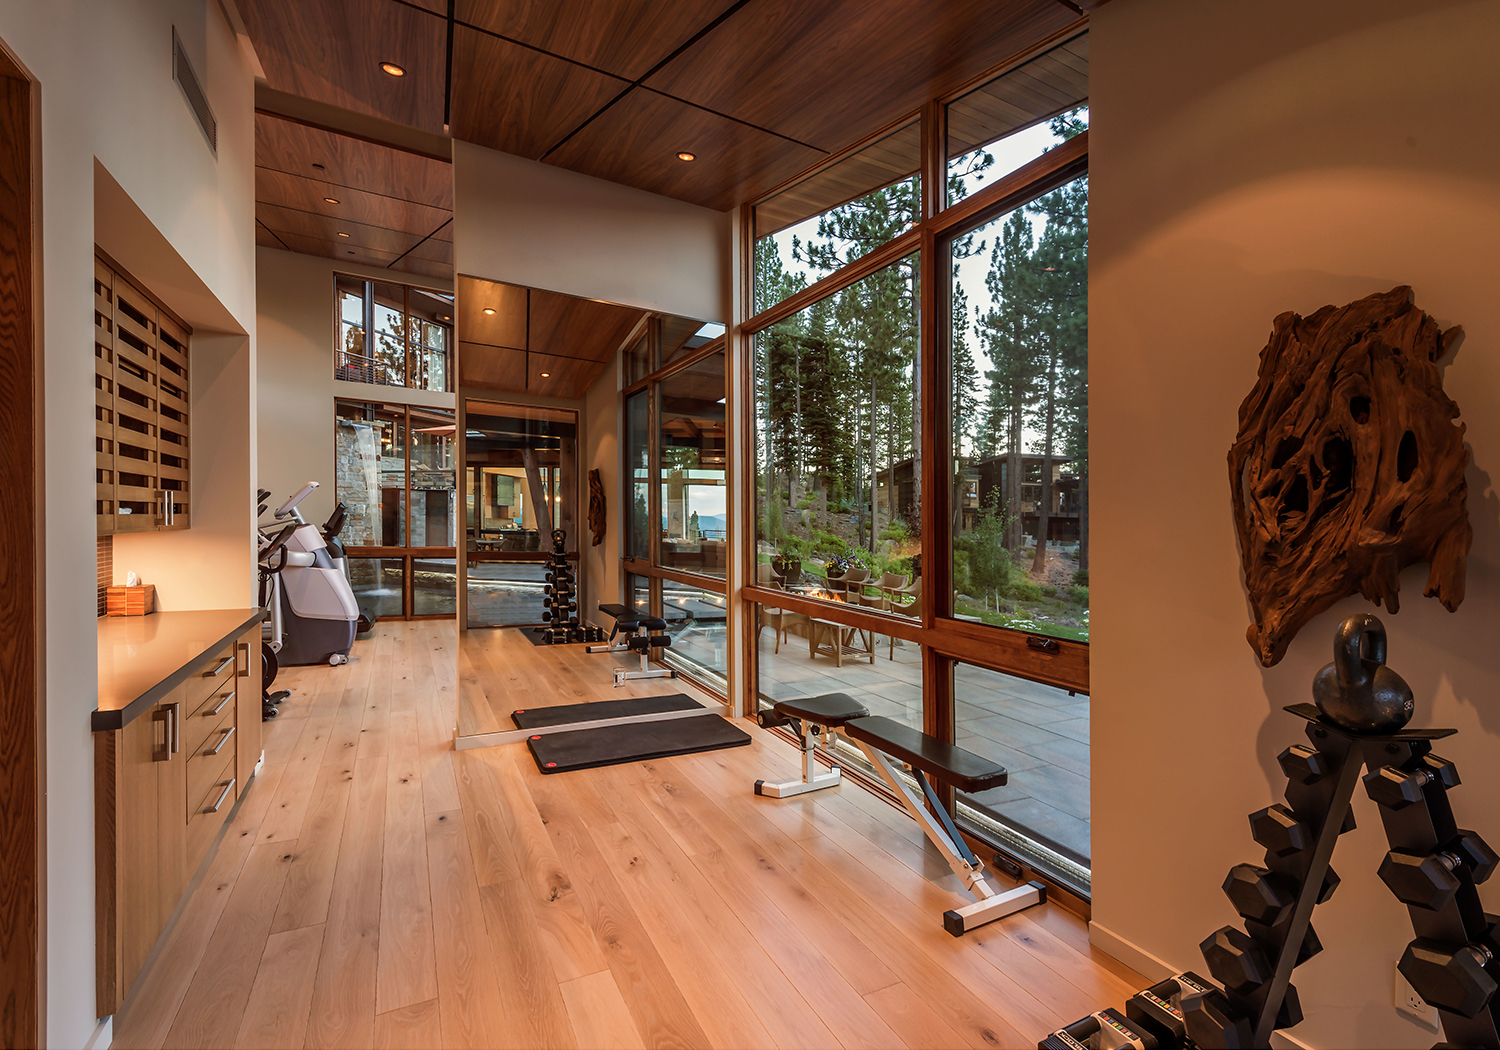 Lot 595_Gym_Wood Floor_Windows_Mirrors_Wood Ceilings.jpg